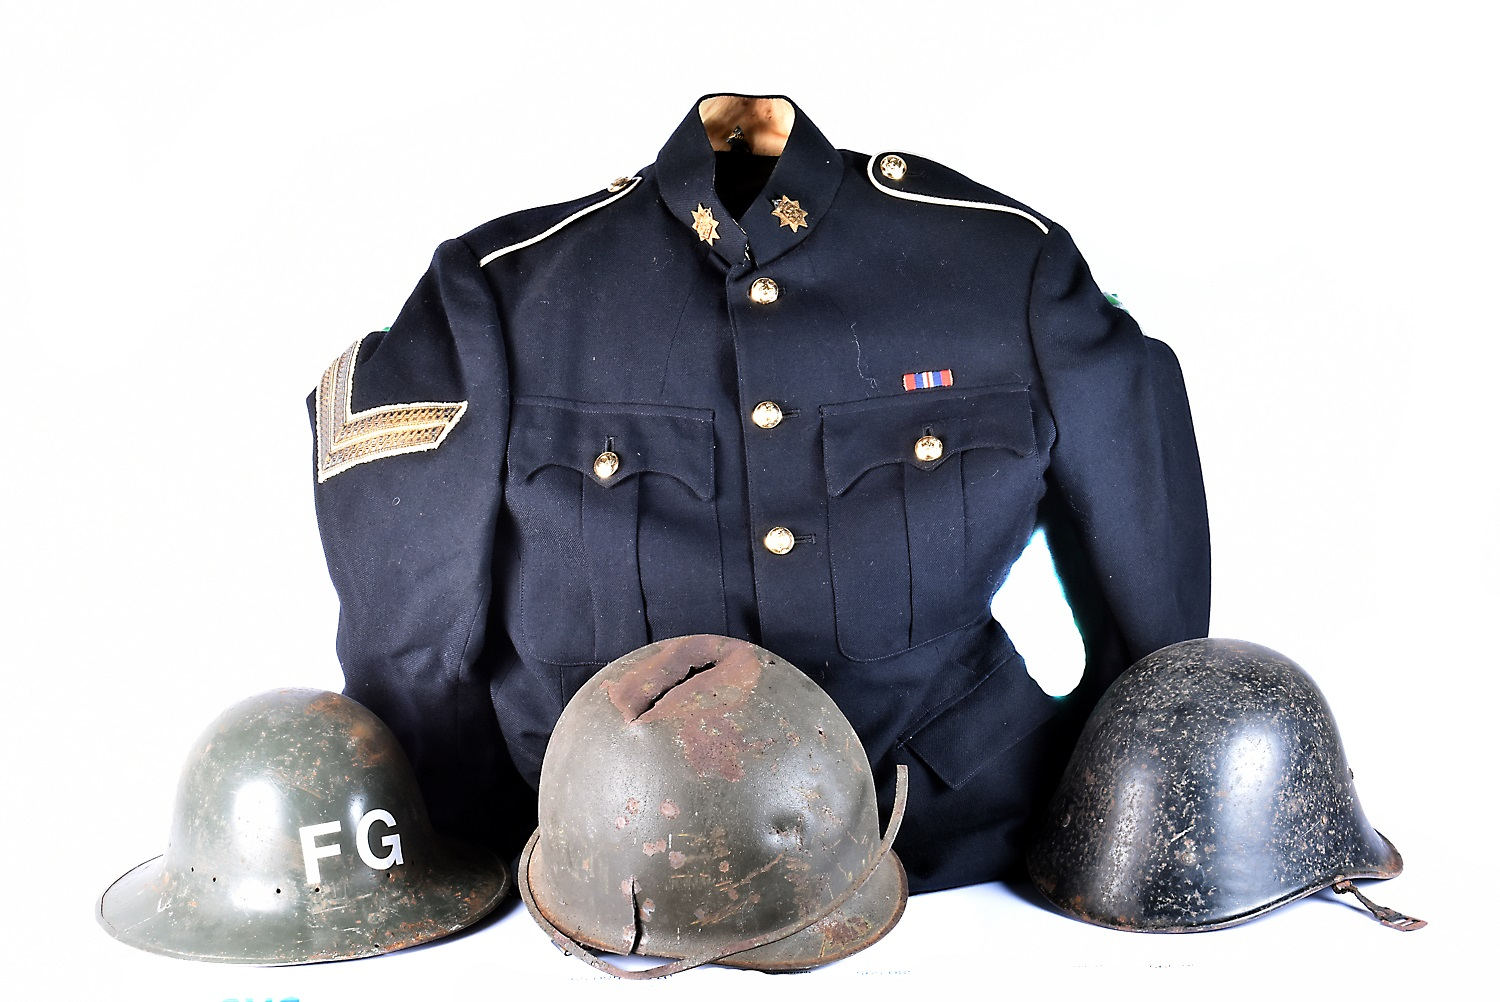 An East Surrey Regiment Corporal's Dress Uniform, comprising of Jacket and Trousers, the jacket